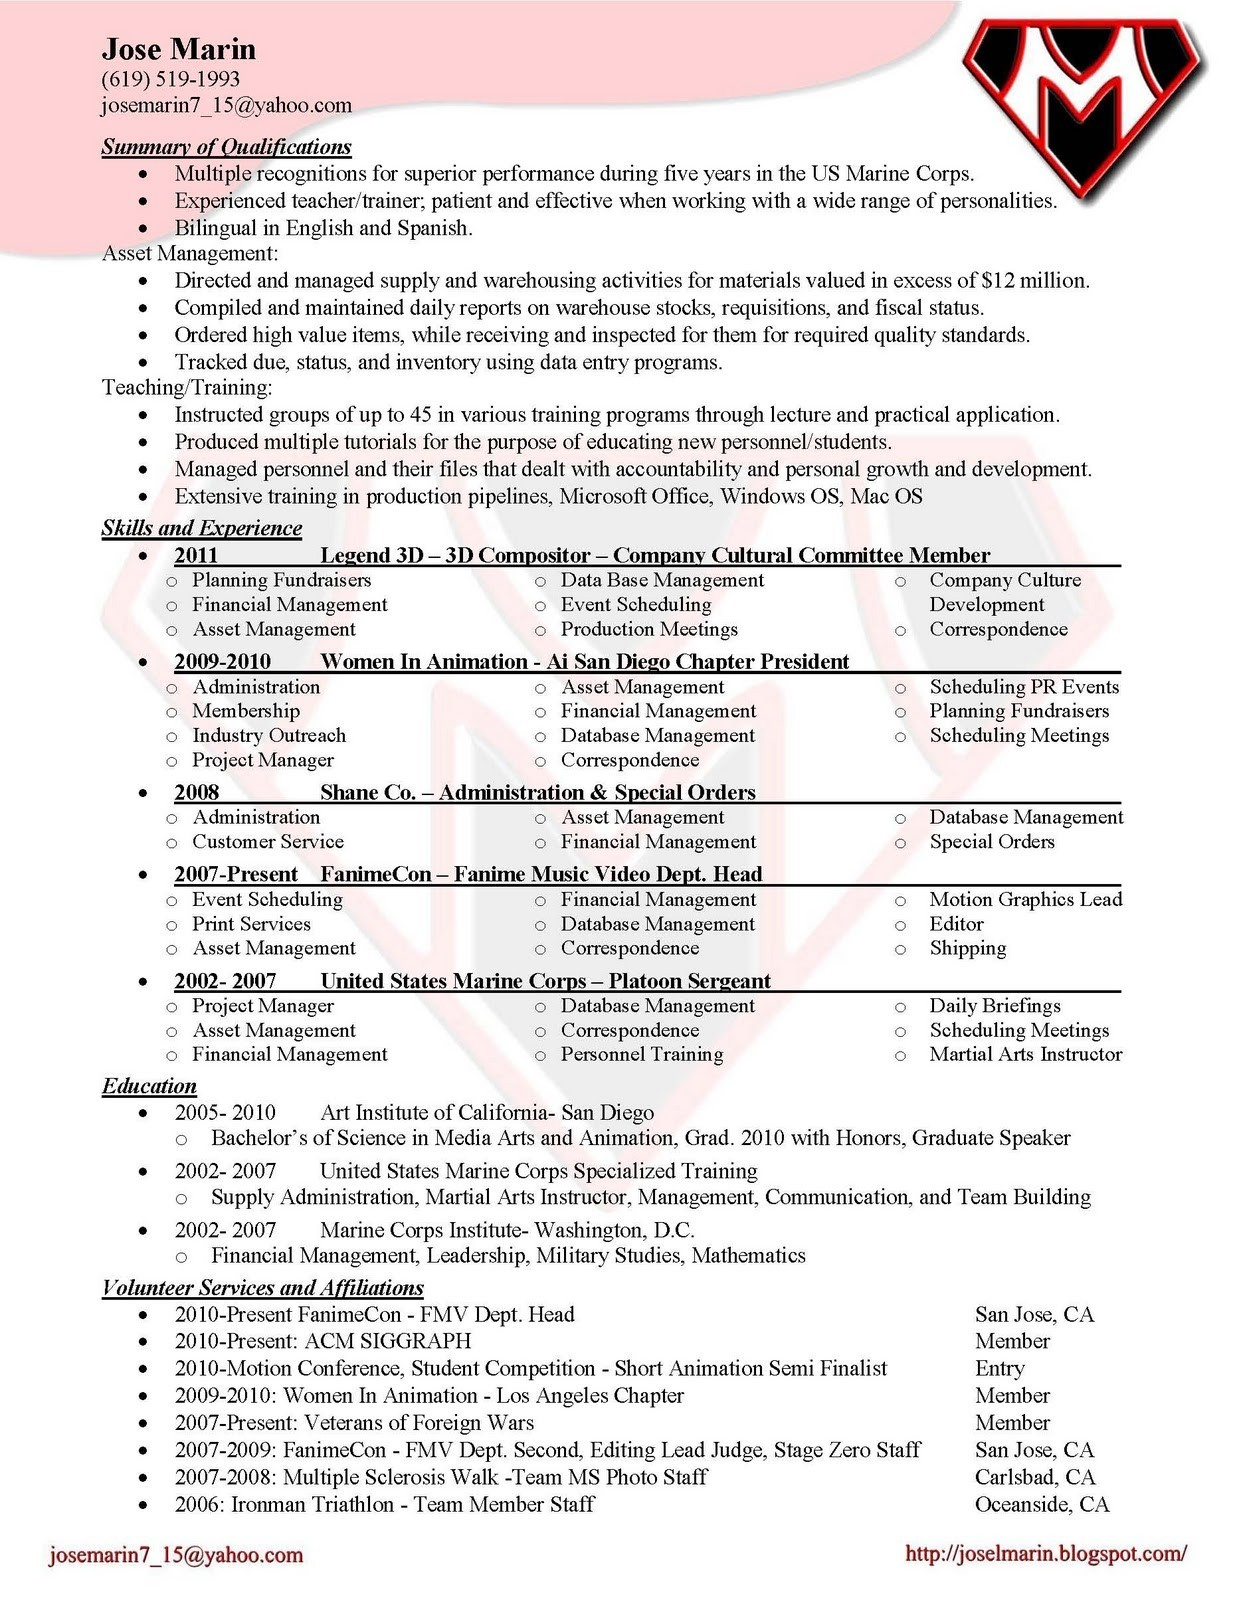 Yahoo Ceo Resume - 15 Awesome Entry Level Resumes